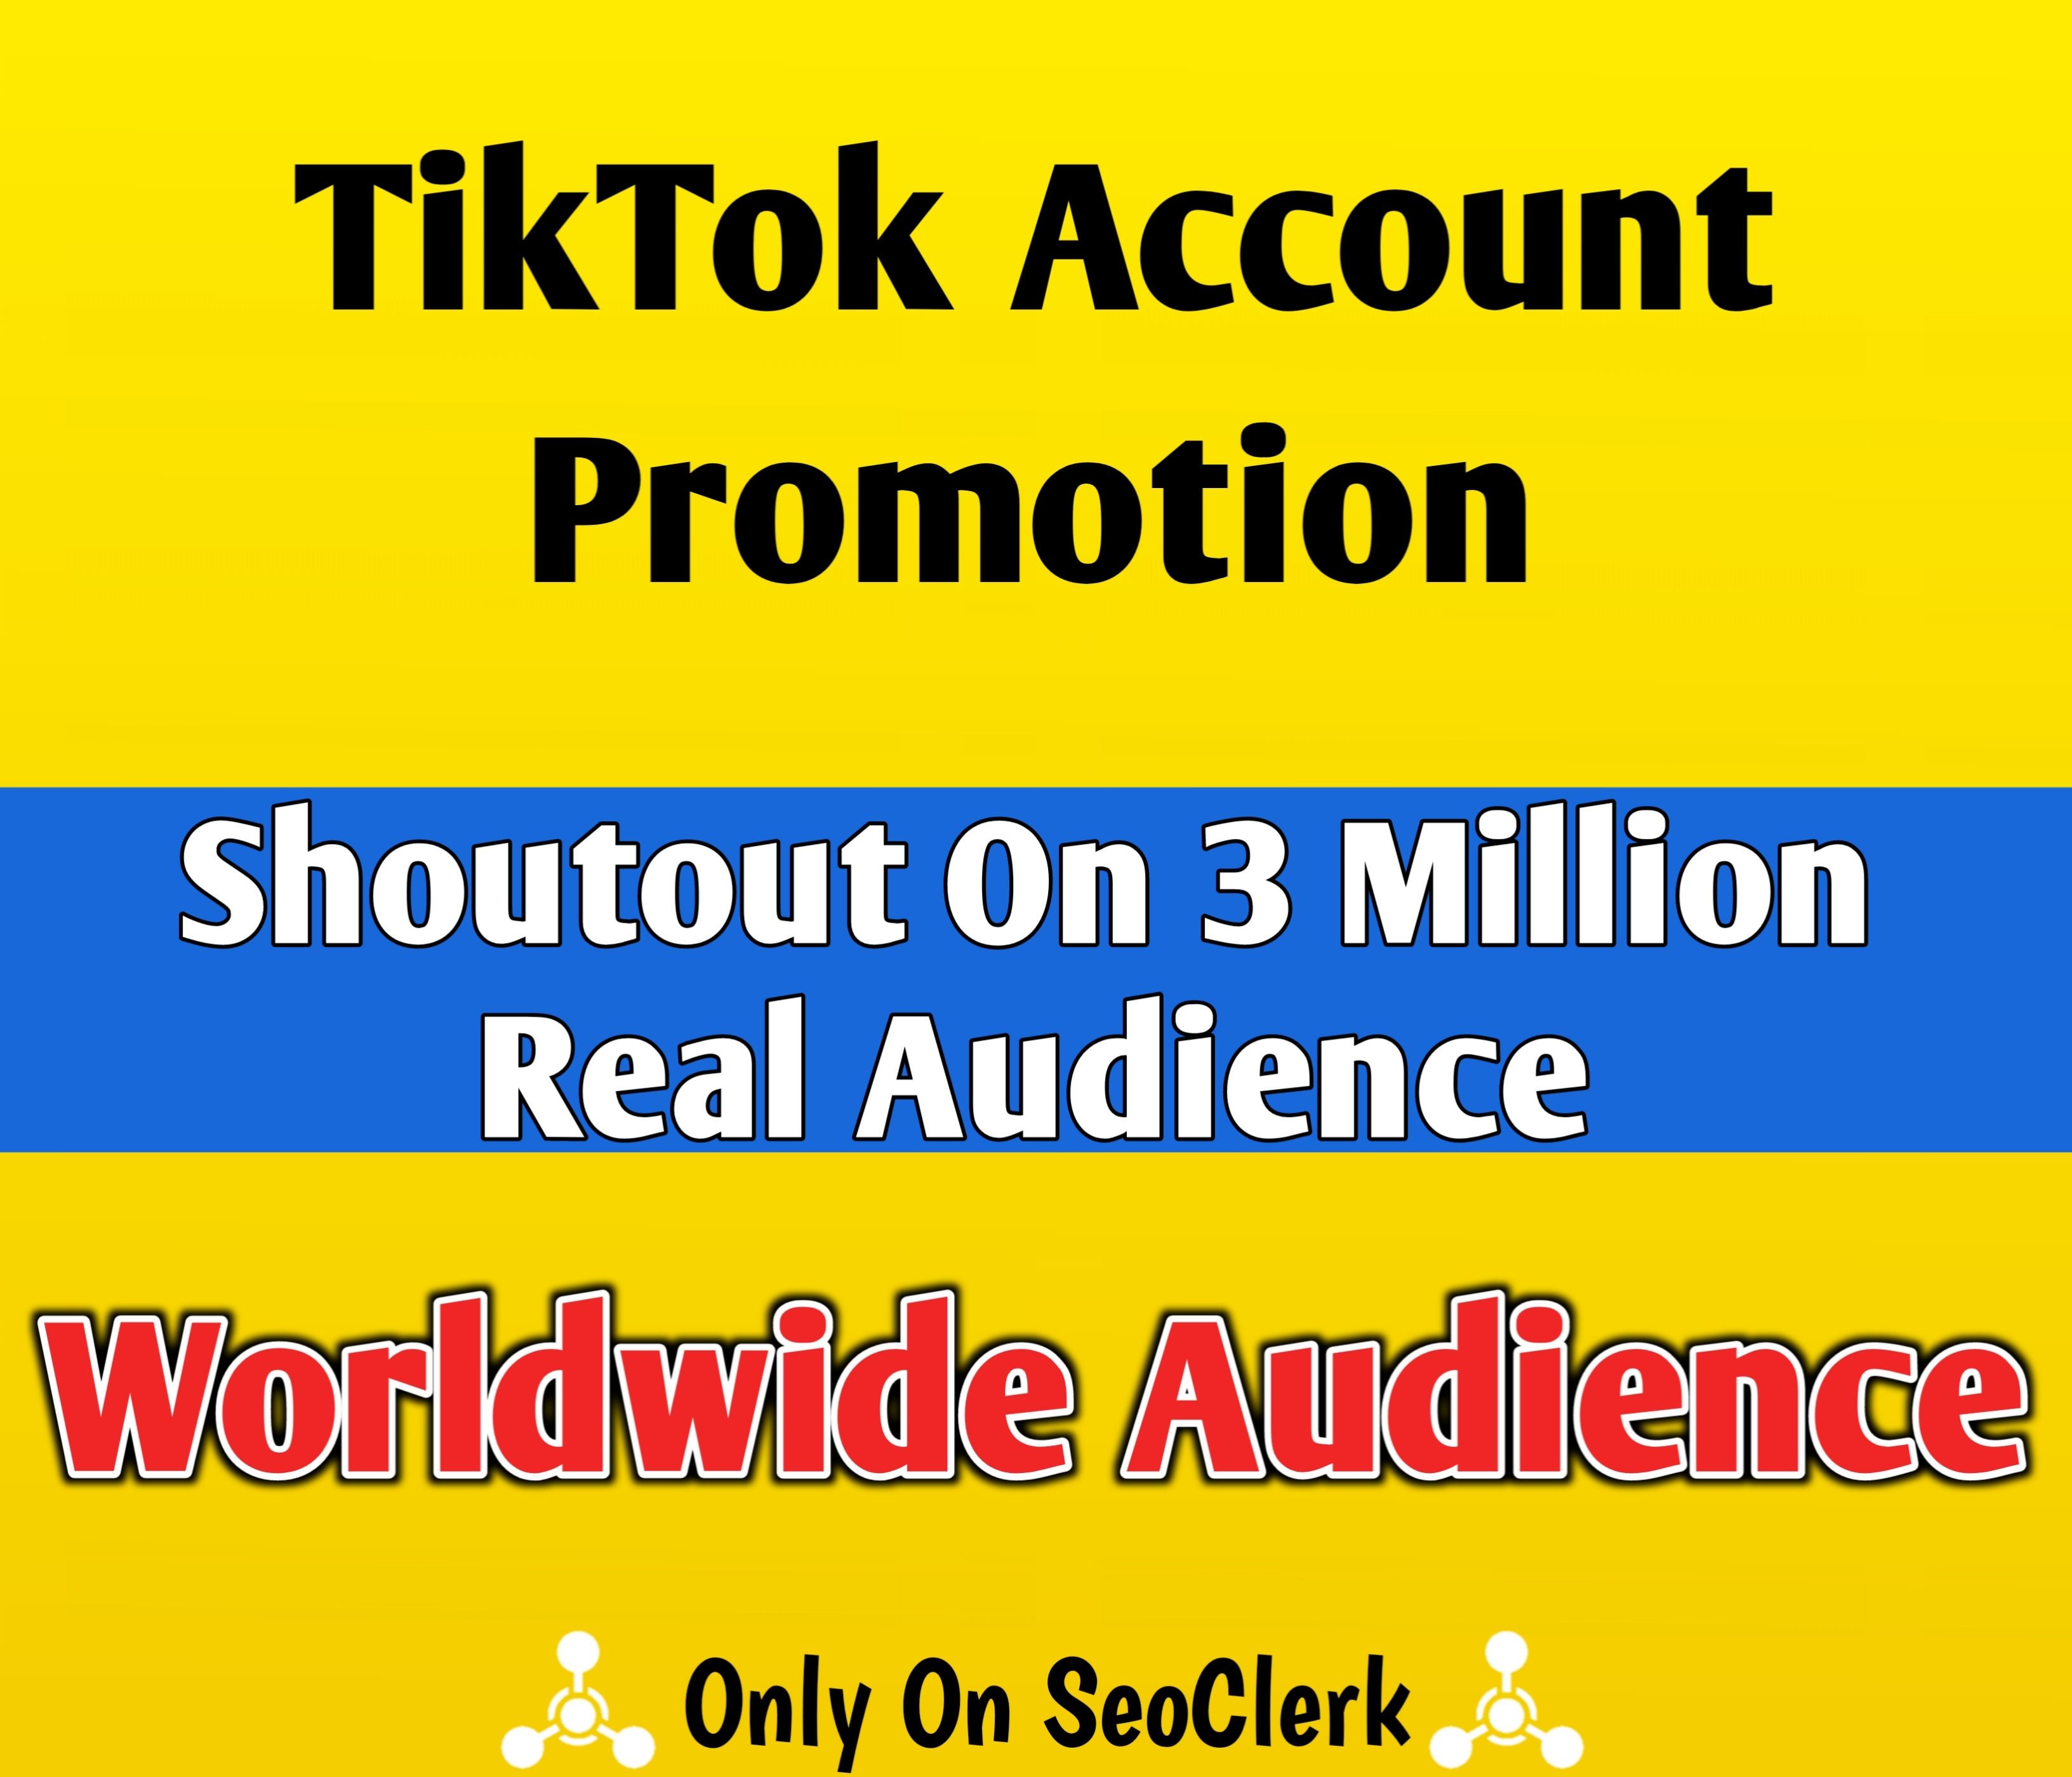 TikTok Account Promotion and Marketing With Social Audience